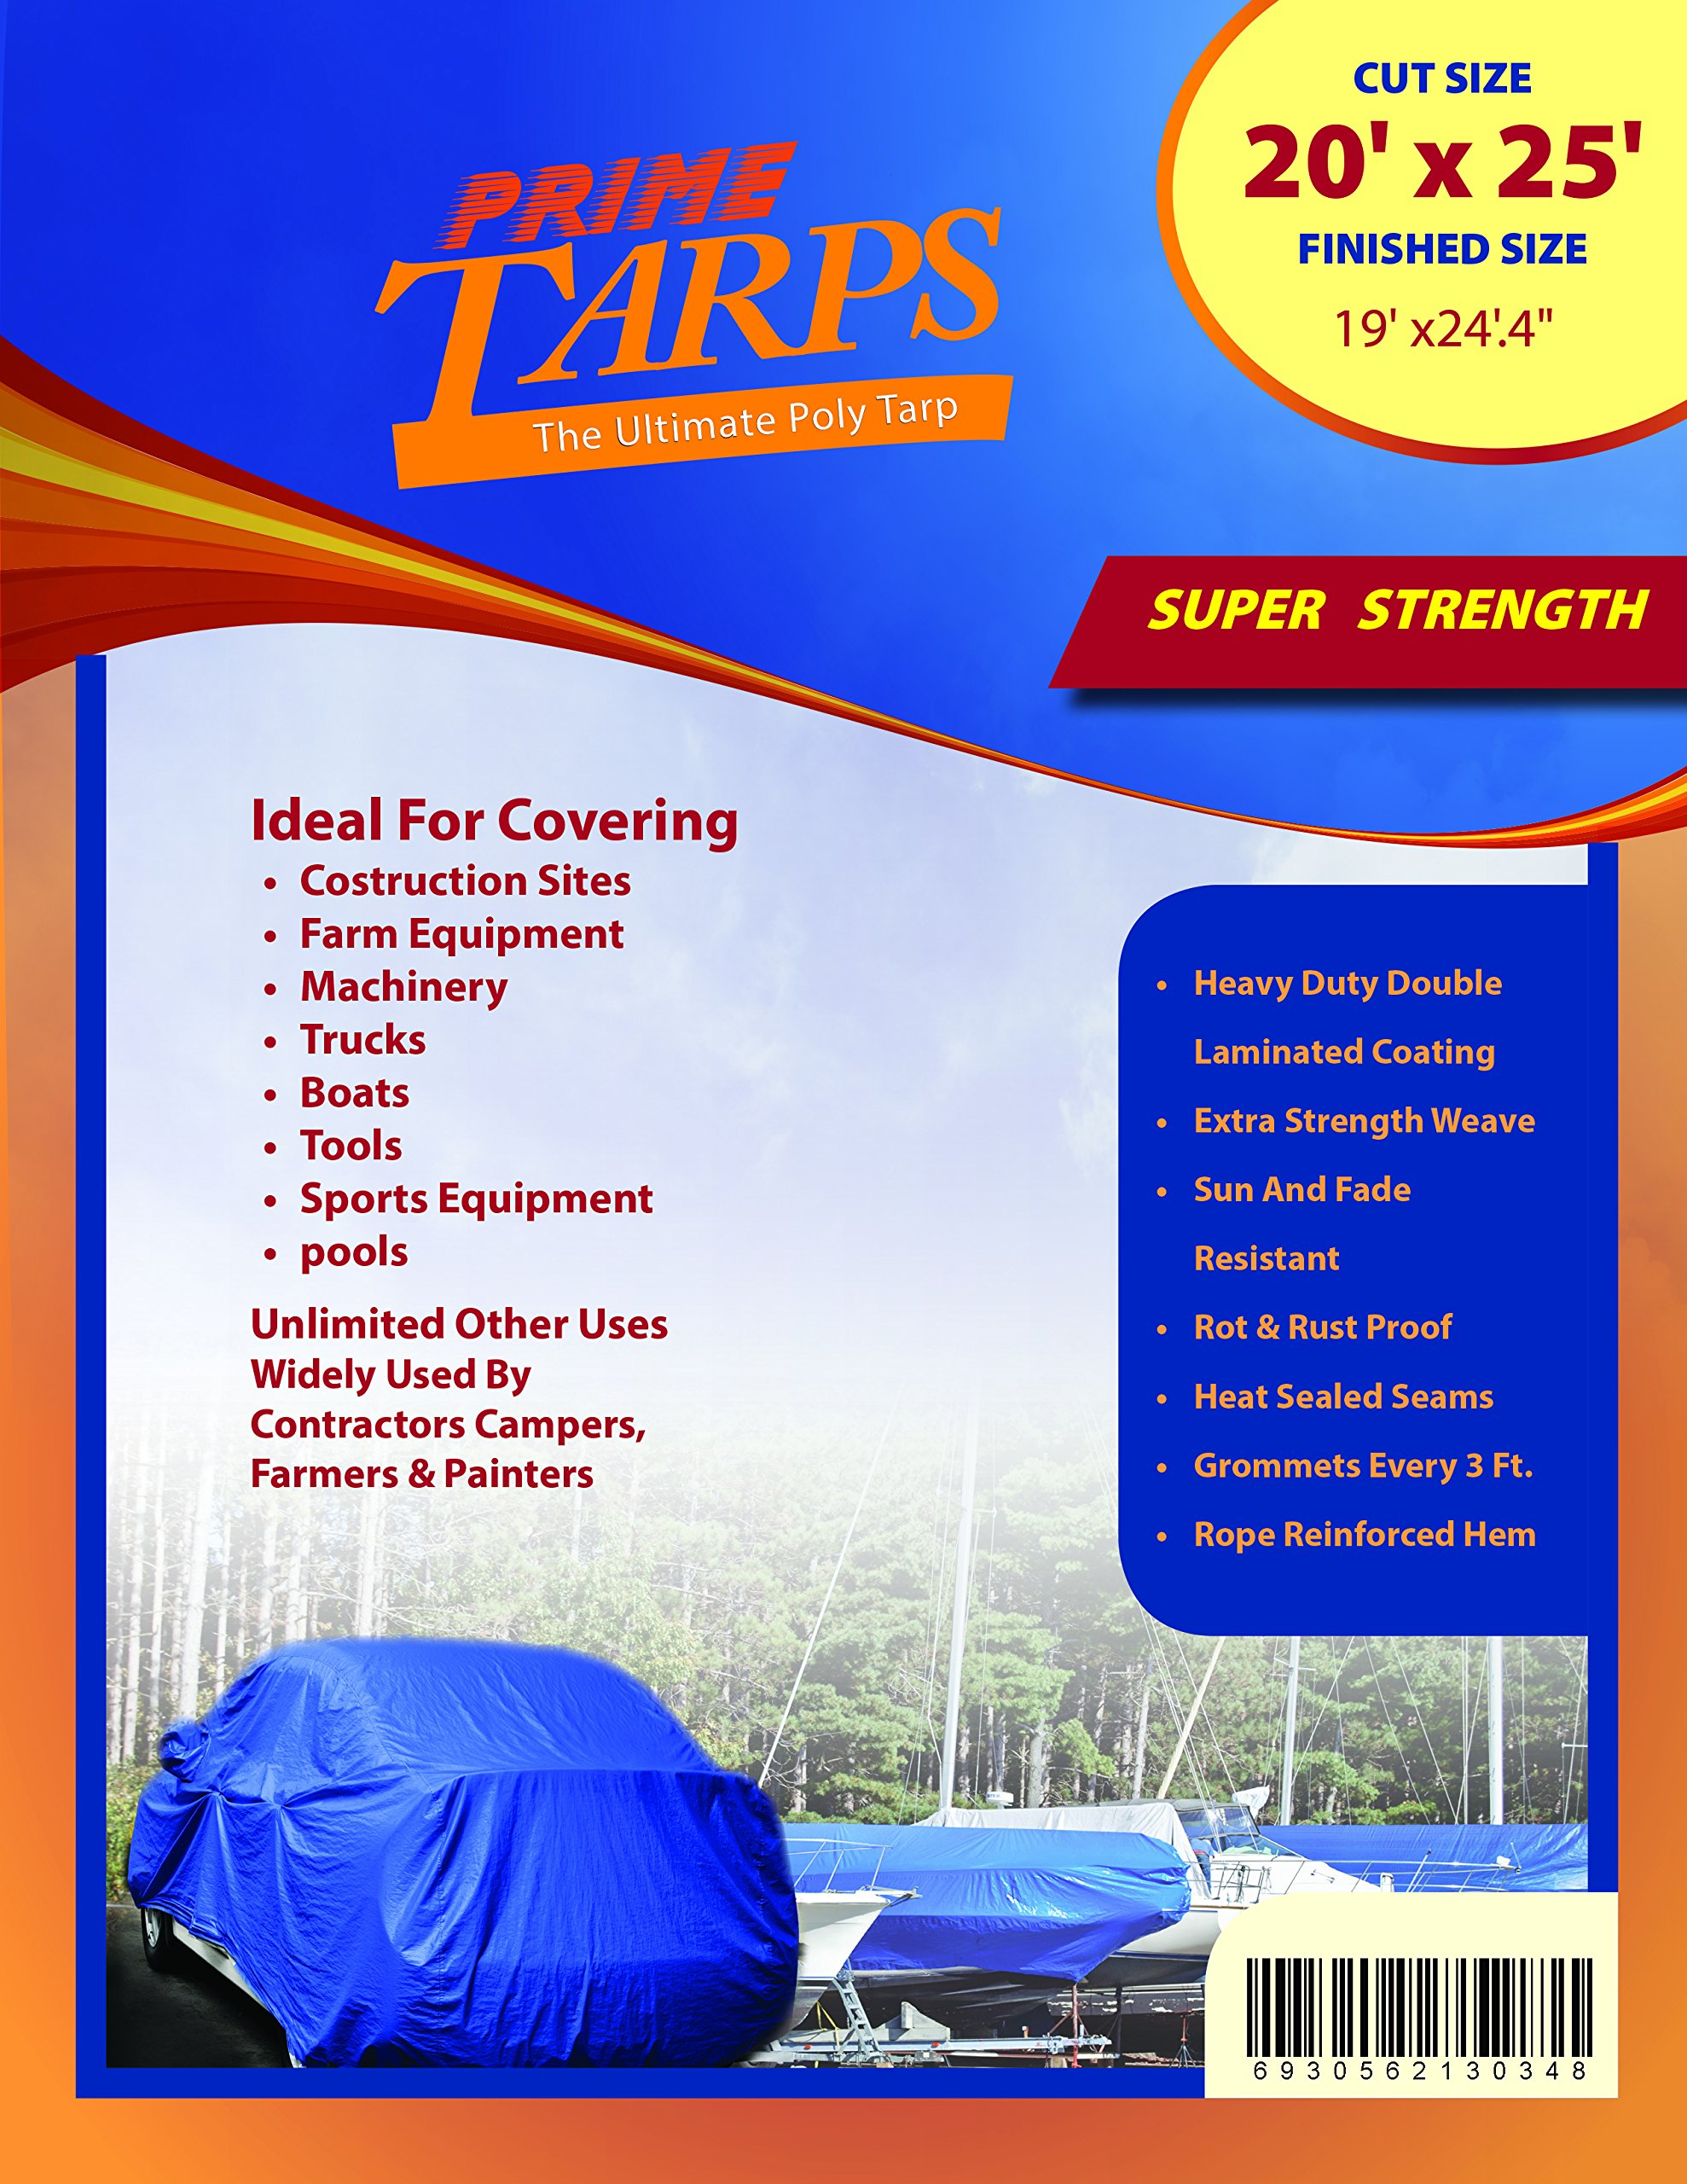 20'x25' Blue Multi-purpose 6ml Waterproof Poly Tarp Cover with Tent Shelter Camping Tarpaulin By Prime Tarps by TARPATOP (Image #2)